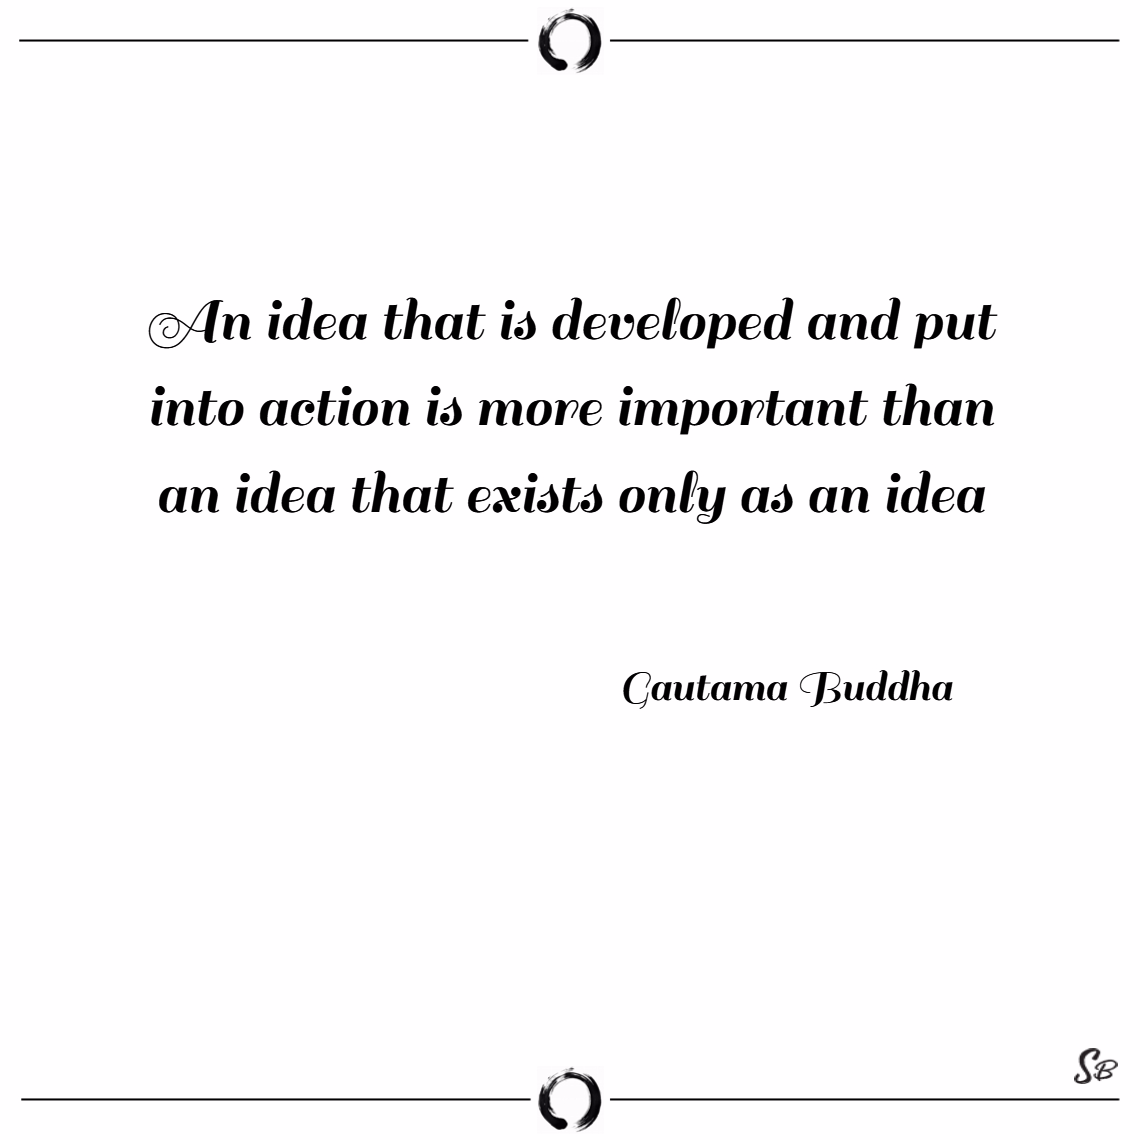 31 buddhism quotes that will open your mind | spirit button